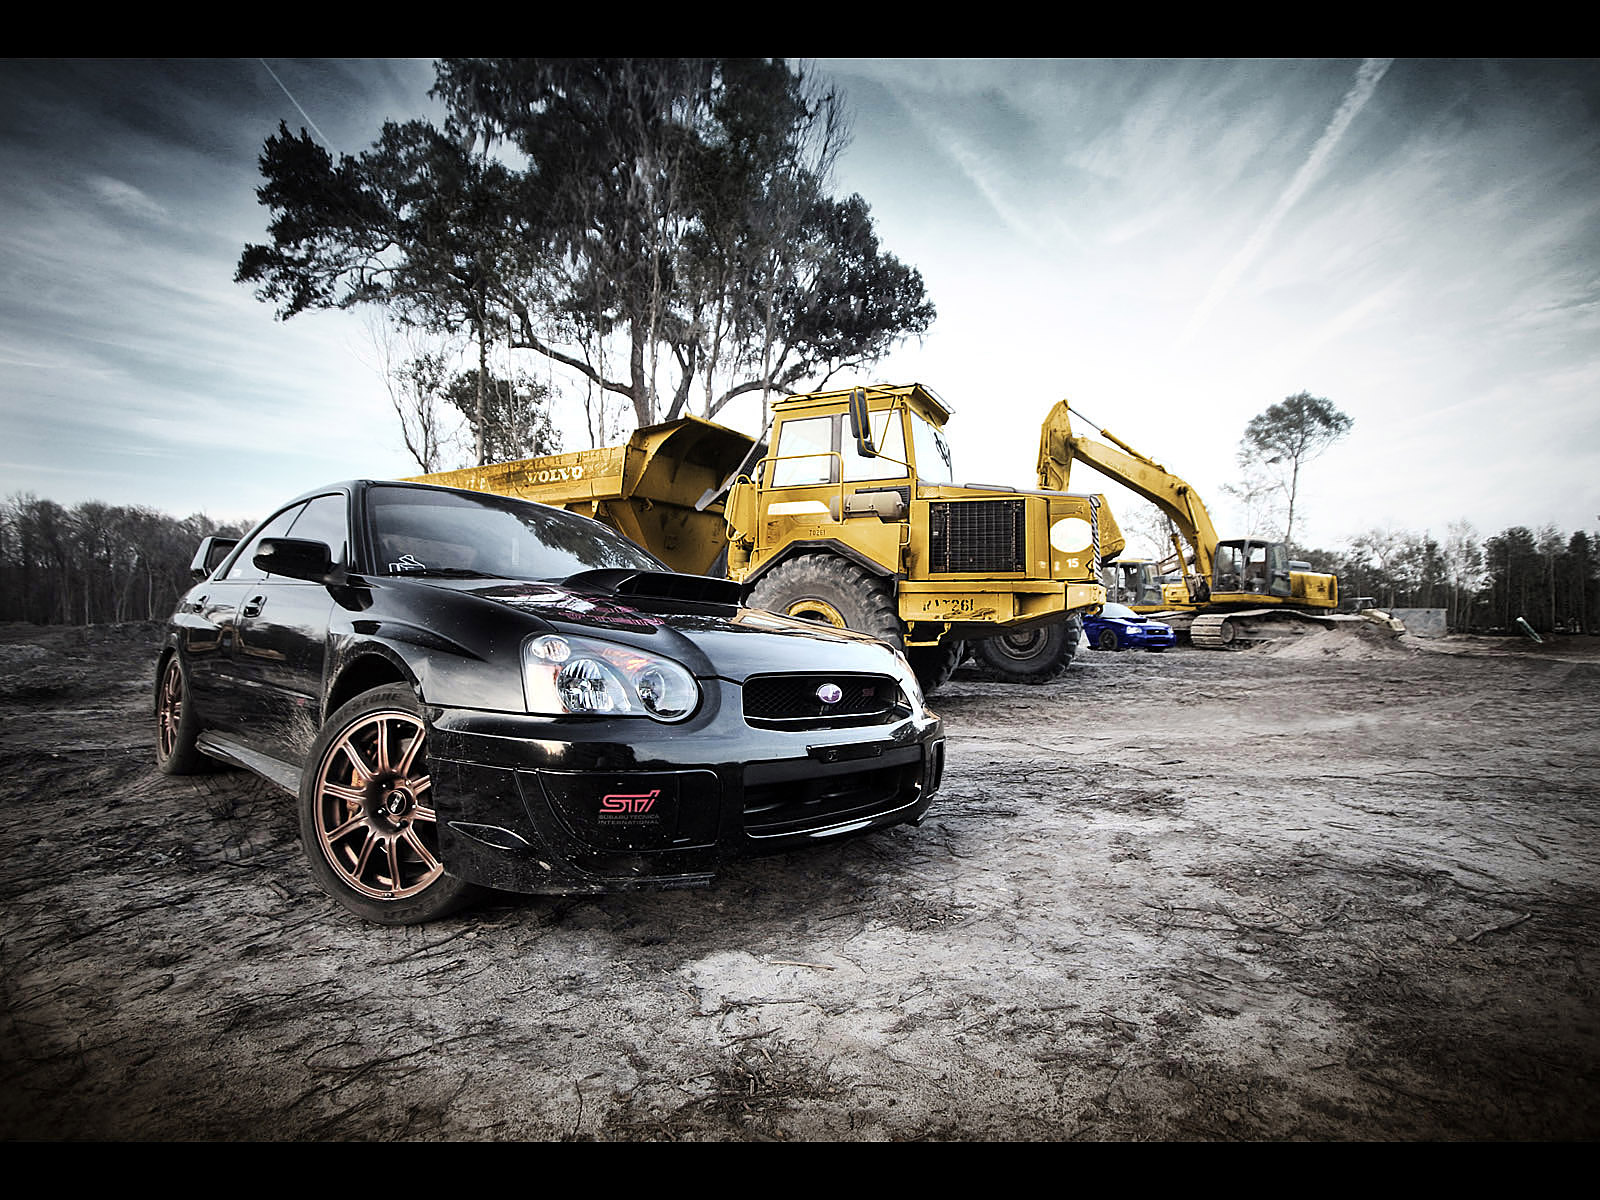 Subaru Impreza WRX STi Photography by Webb Bland - Stalk - 1600x1200 - Wallpaper